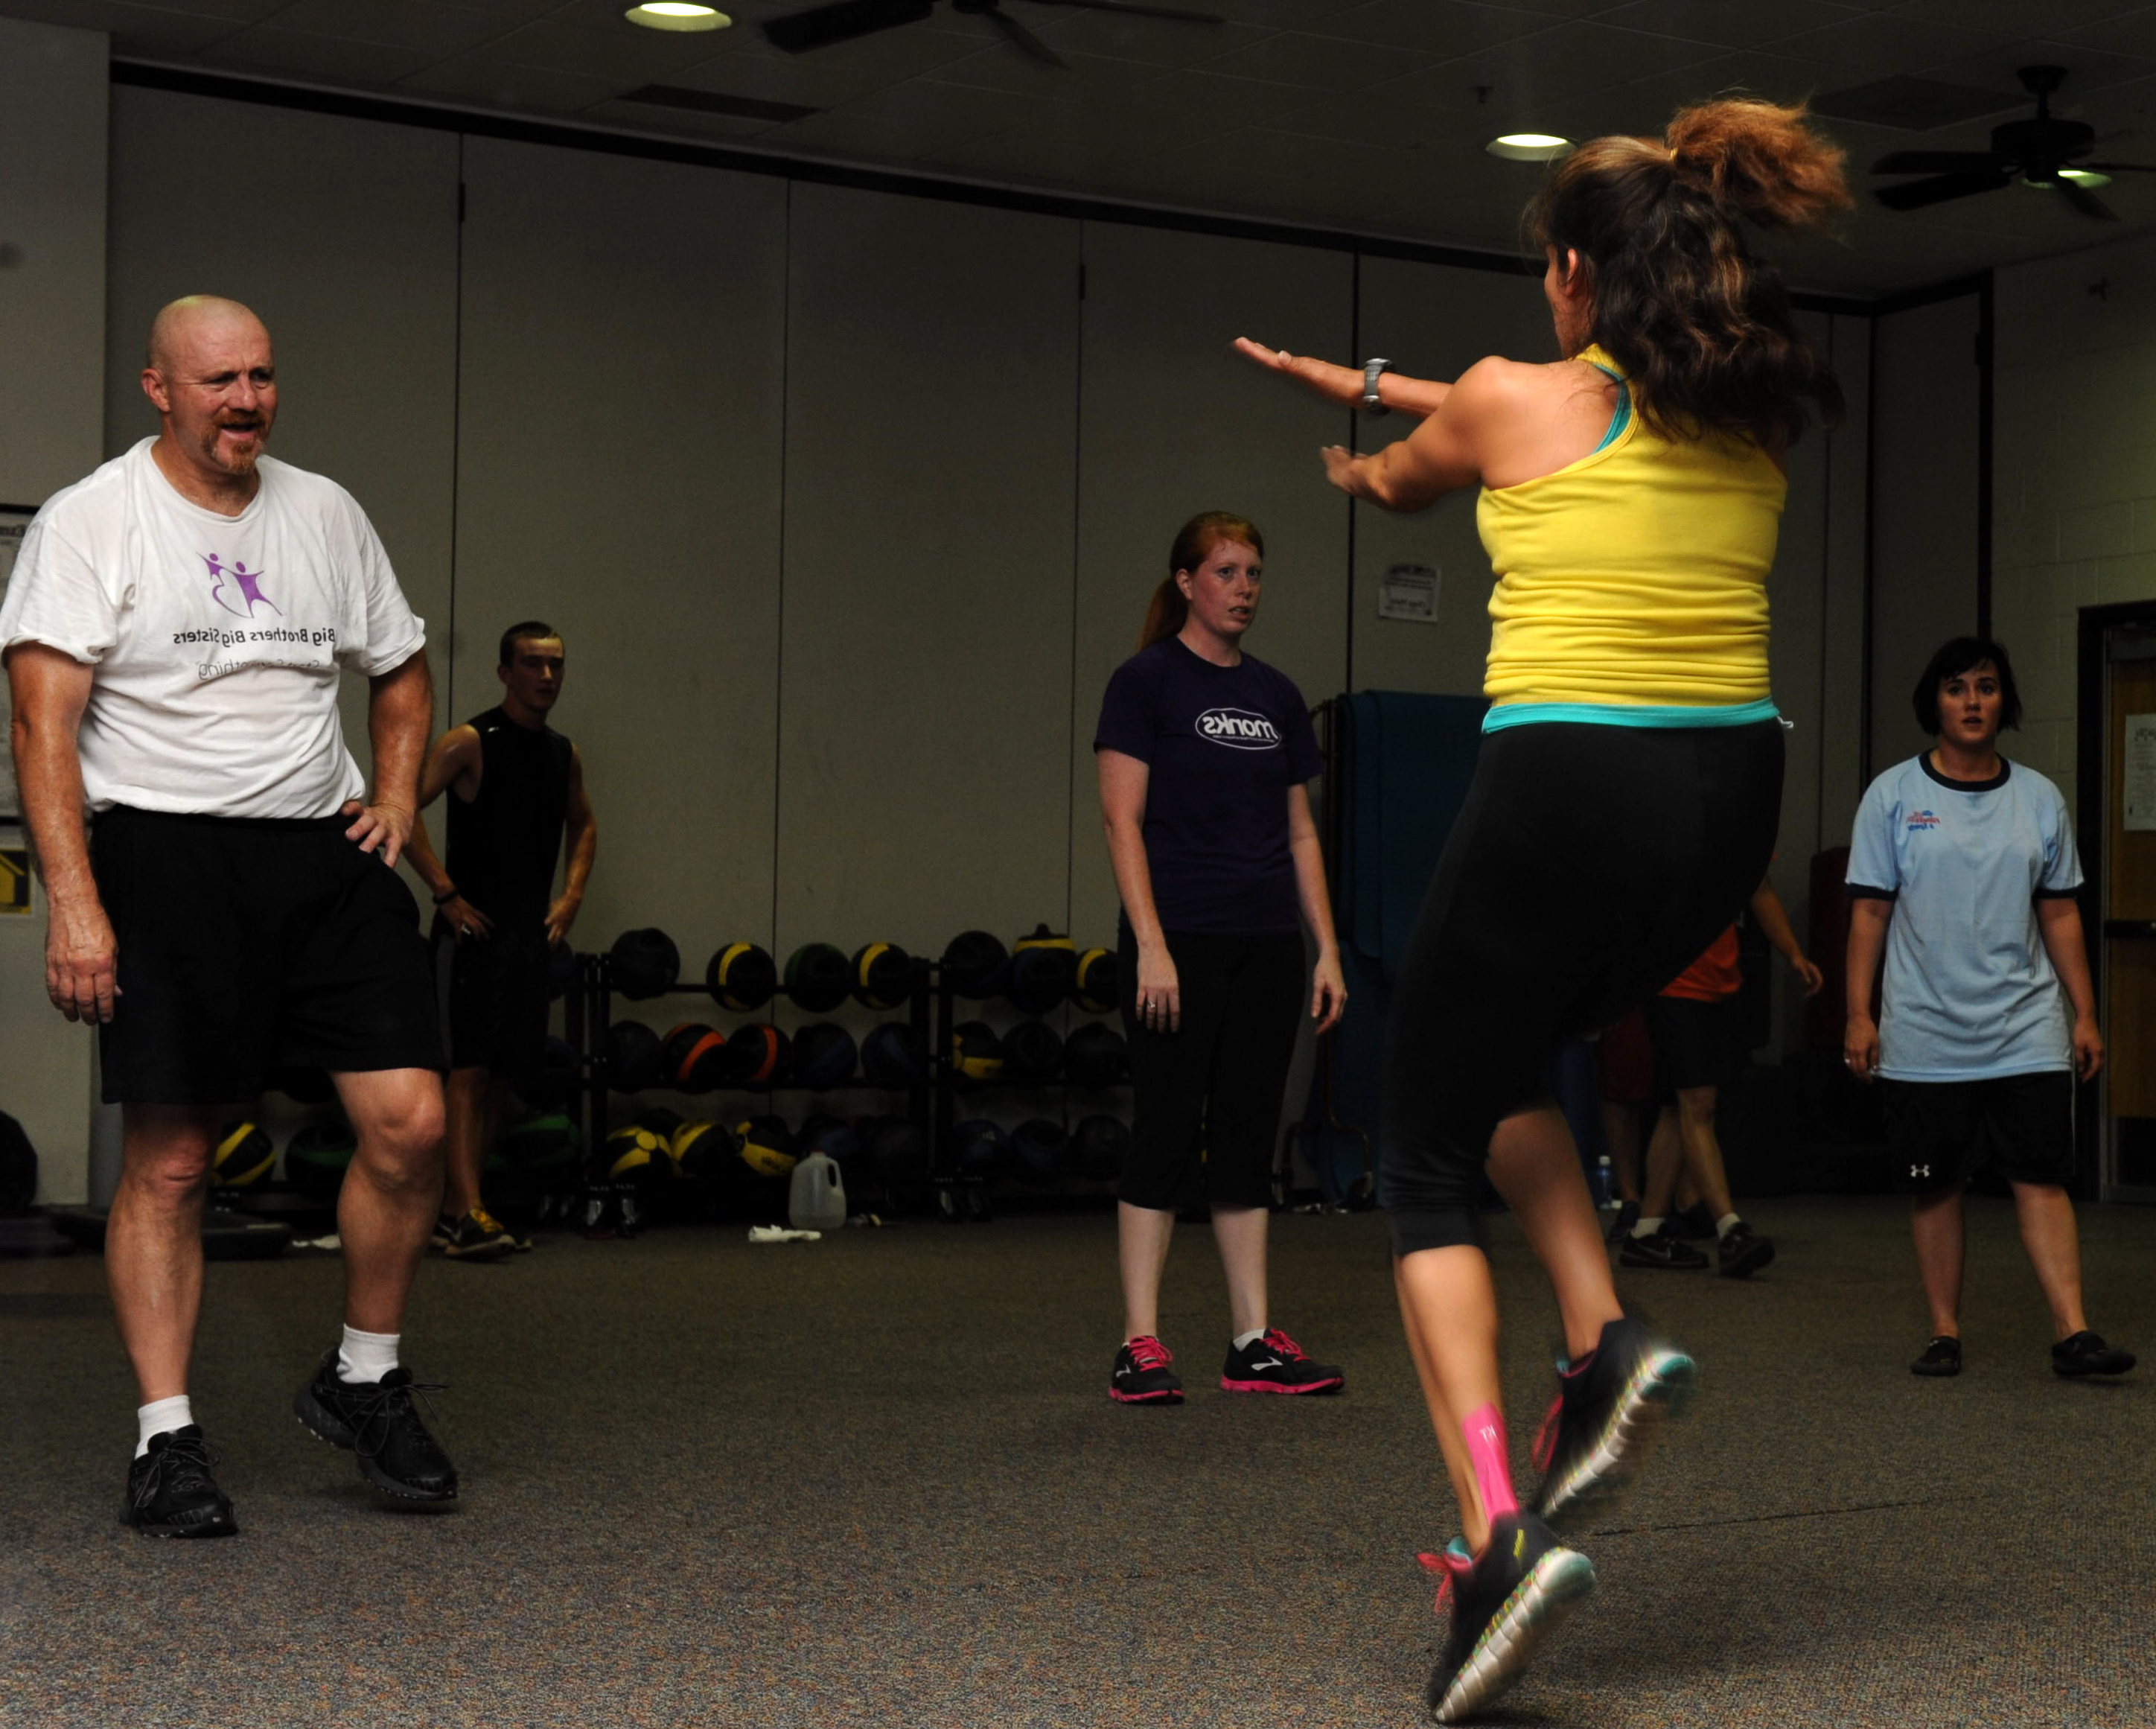 Insanity A Workout For All Dyess Air